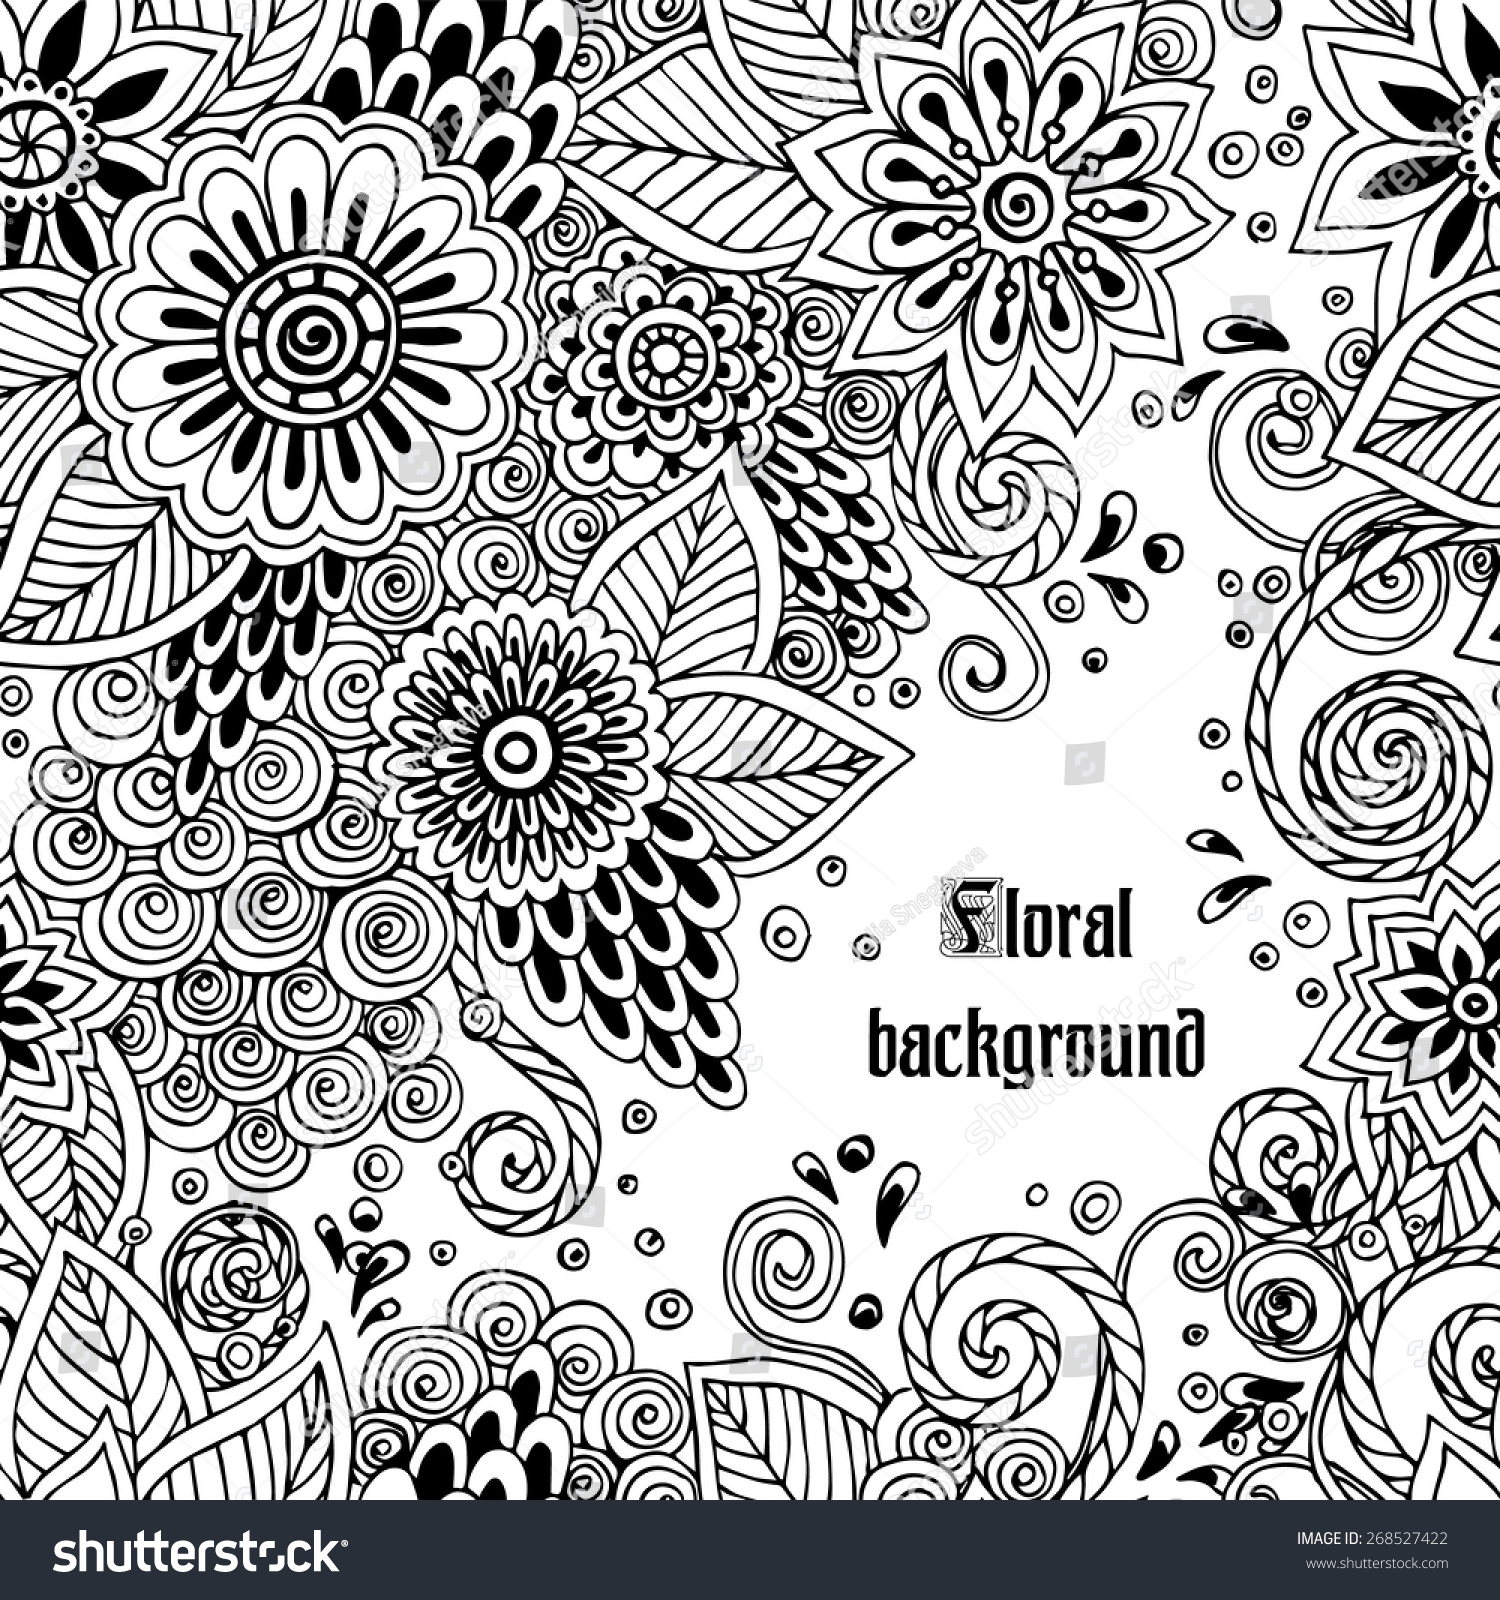 Ornate Floral Pattern Flowersdoodle Sharpie Floral Stock Vector 1500x1600